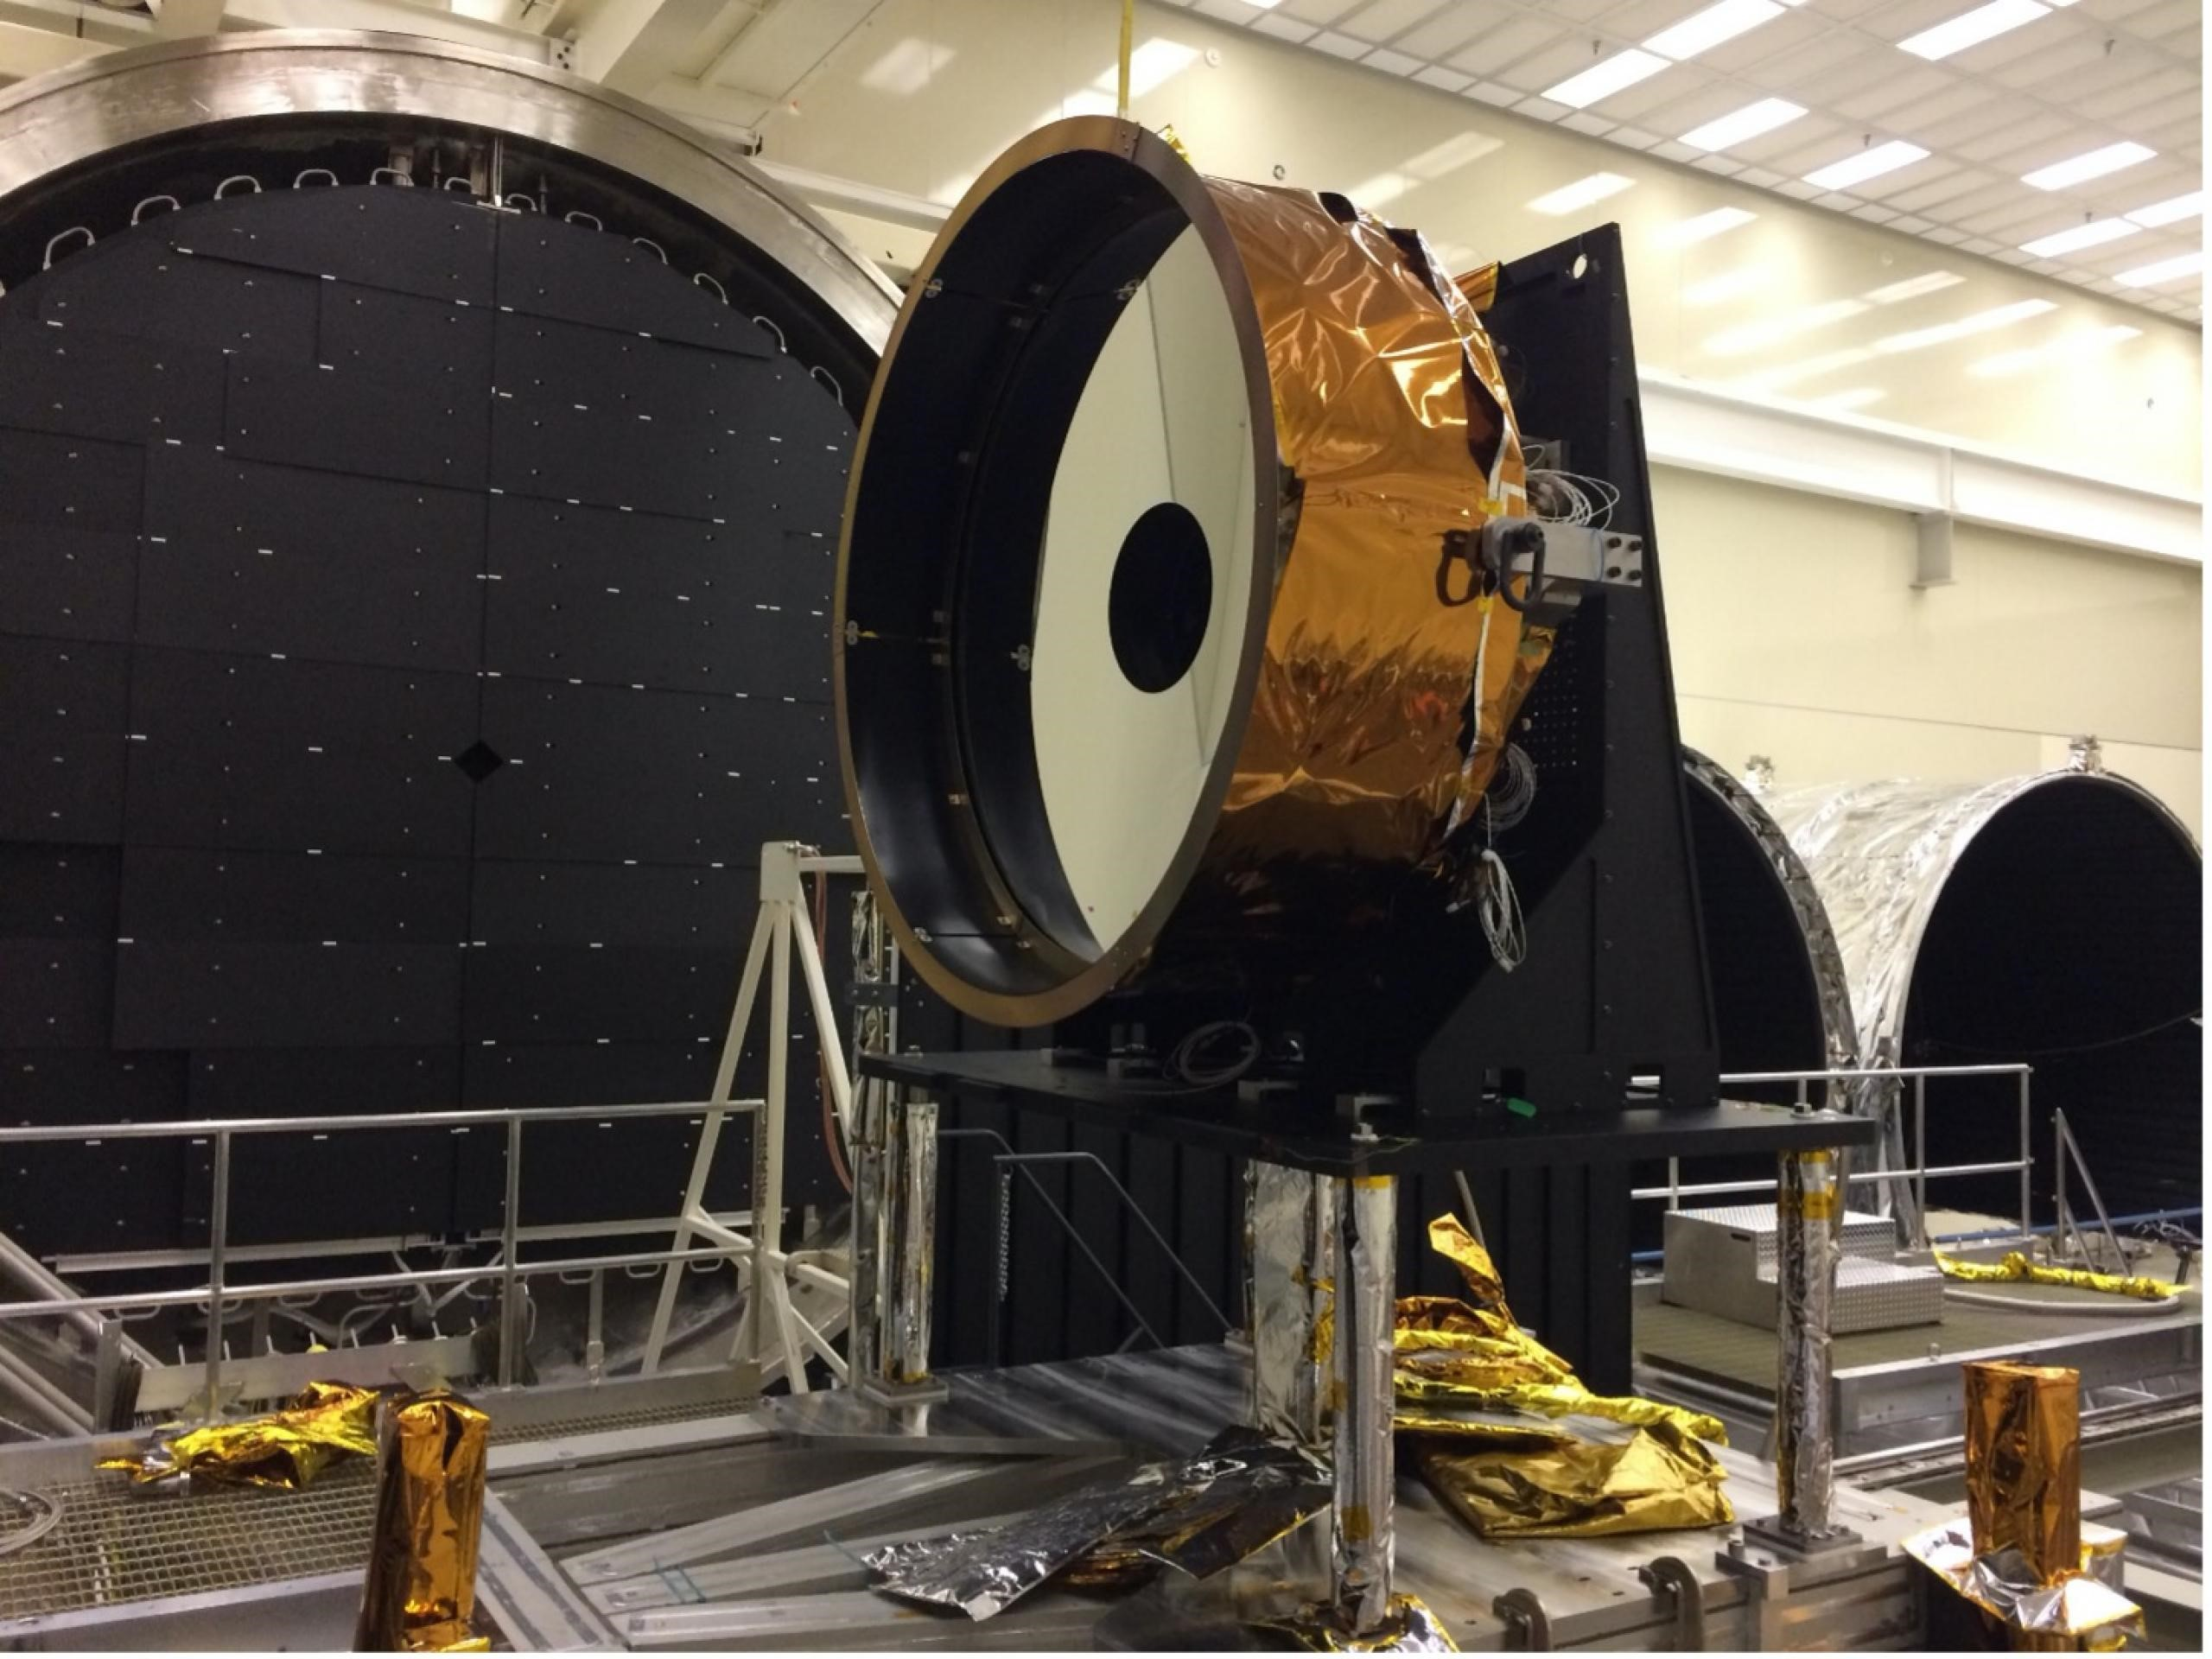 ULE Mirror at MSFC XRCF for Environmental Testing